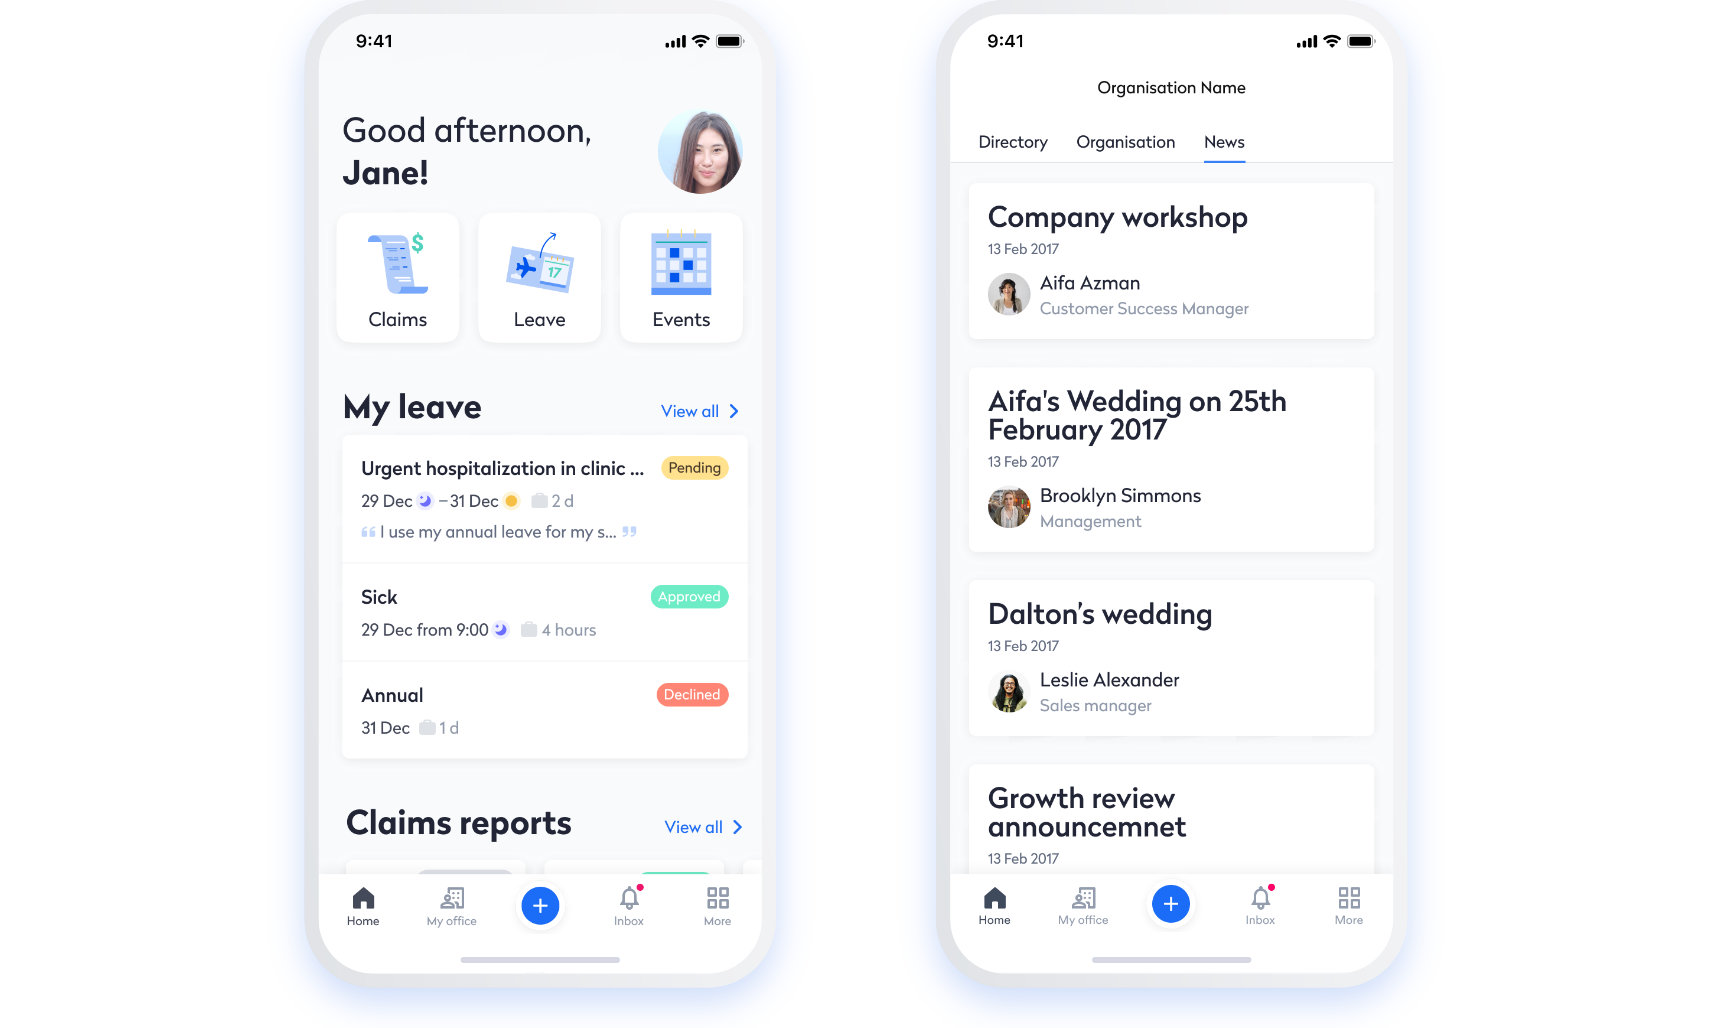 Swingvy mobile HR app dashboard and company news feed